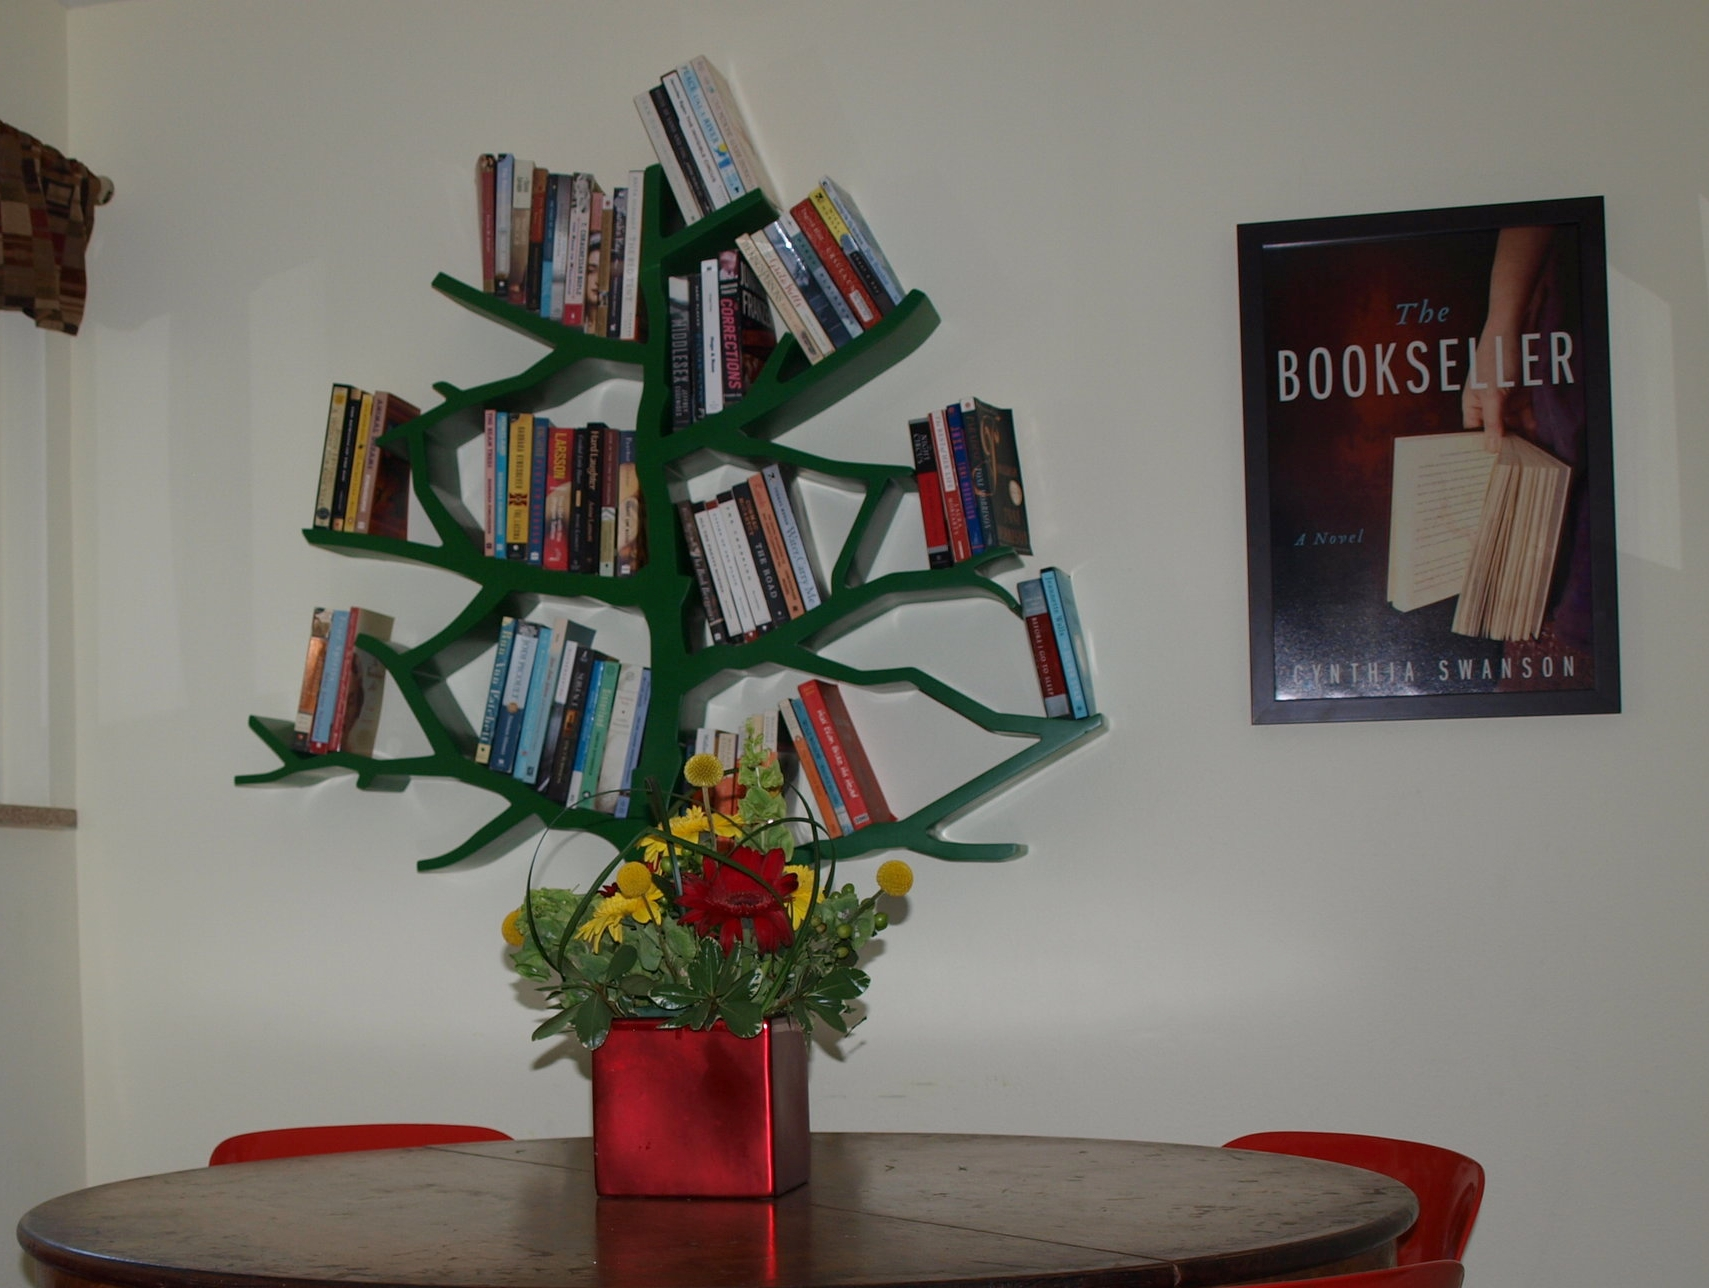 I'm madly in love with this tree-shaped bookshelf from NurseryWorks. It looks great in the library, next to a poster of the cover of my novel The Bookseller.